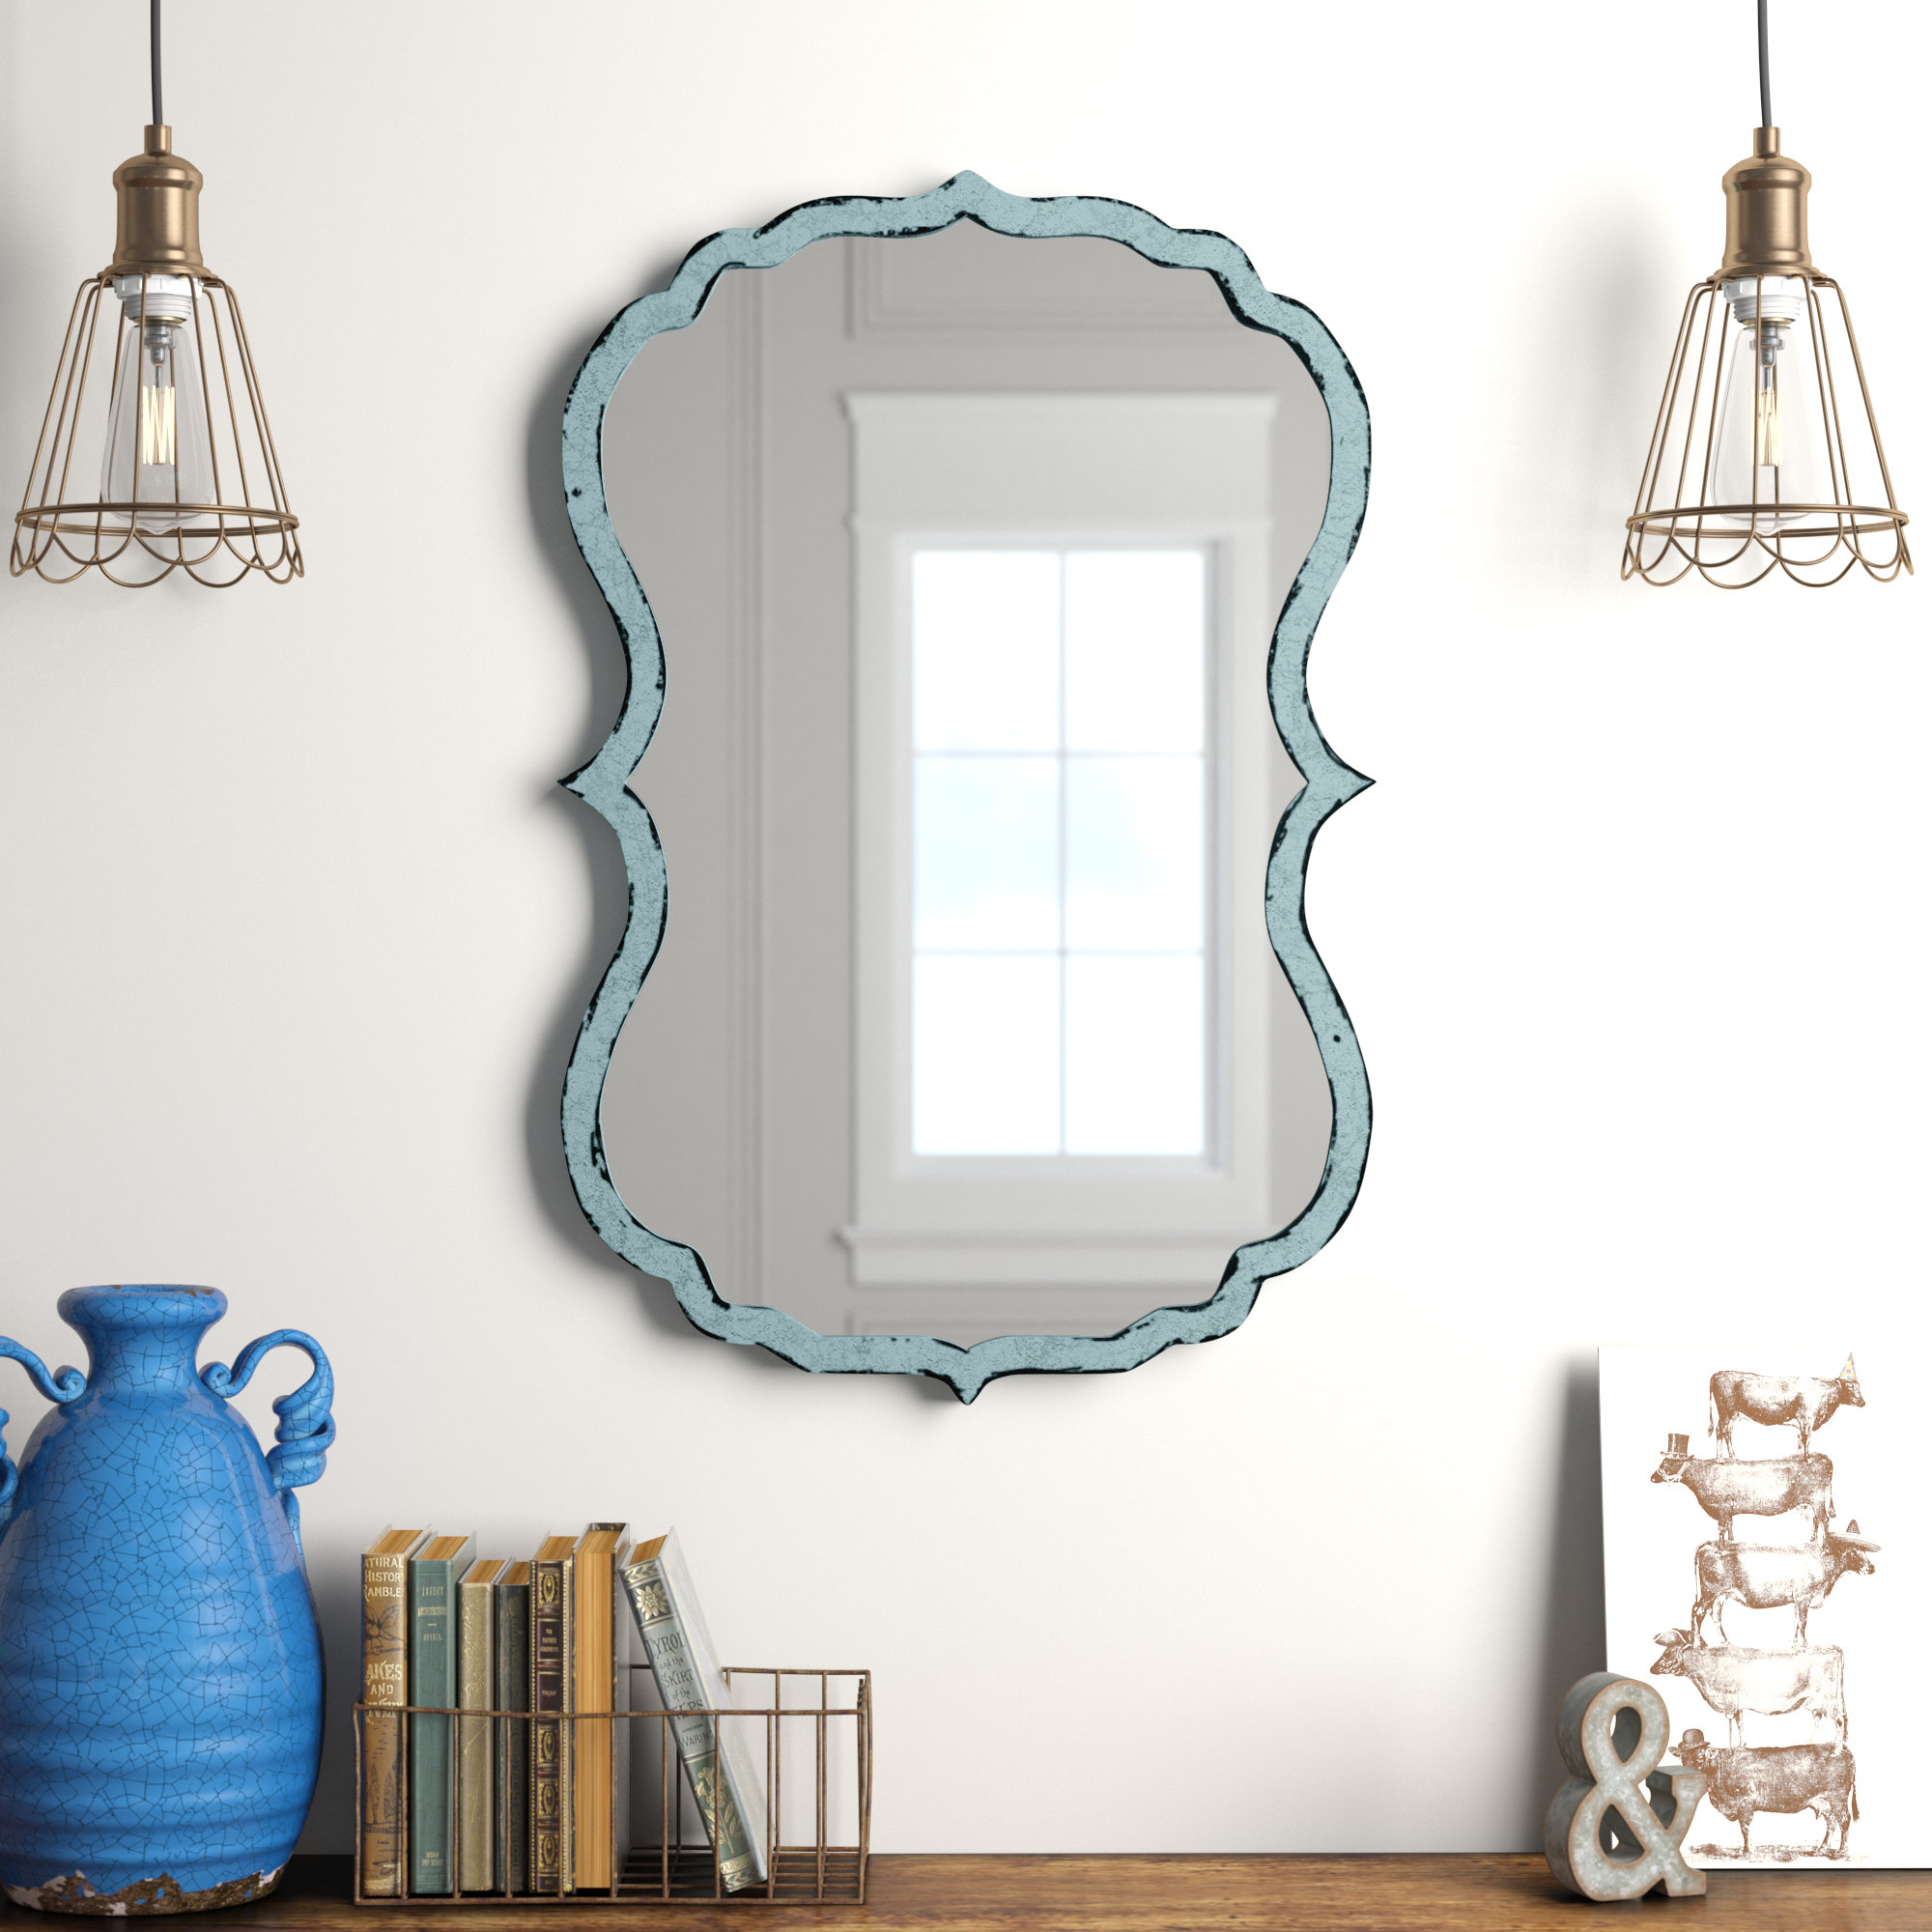 Distressed Driftwood Mirrors | Wayfair Pertaining To Alie Traditional Beveled Distressed Accent Mirrors (Gallery 27 of 30)